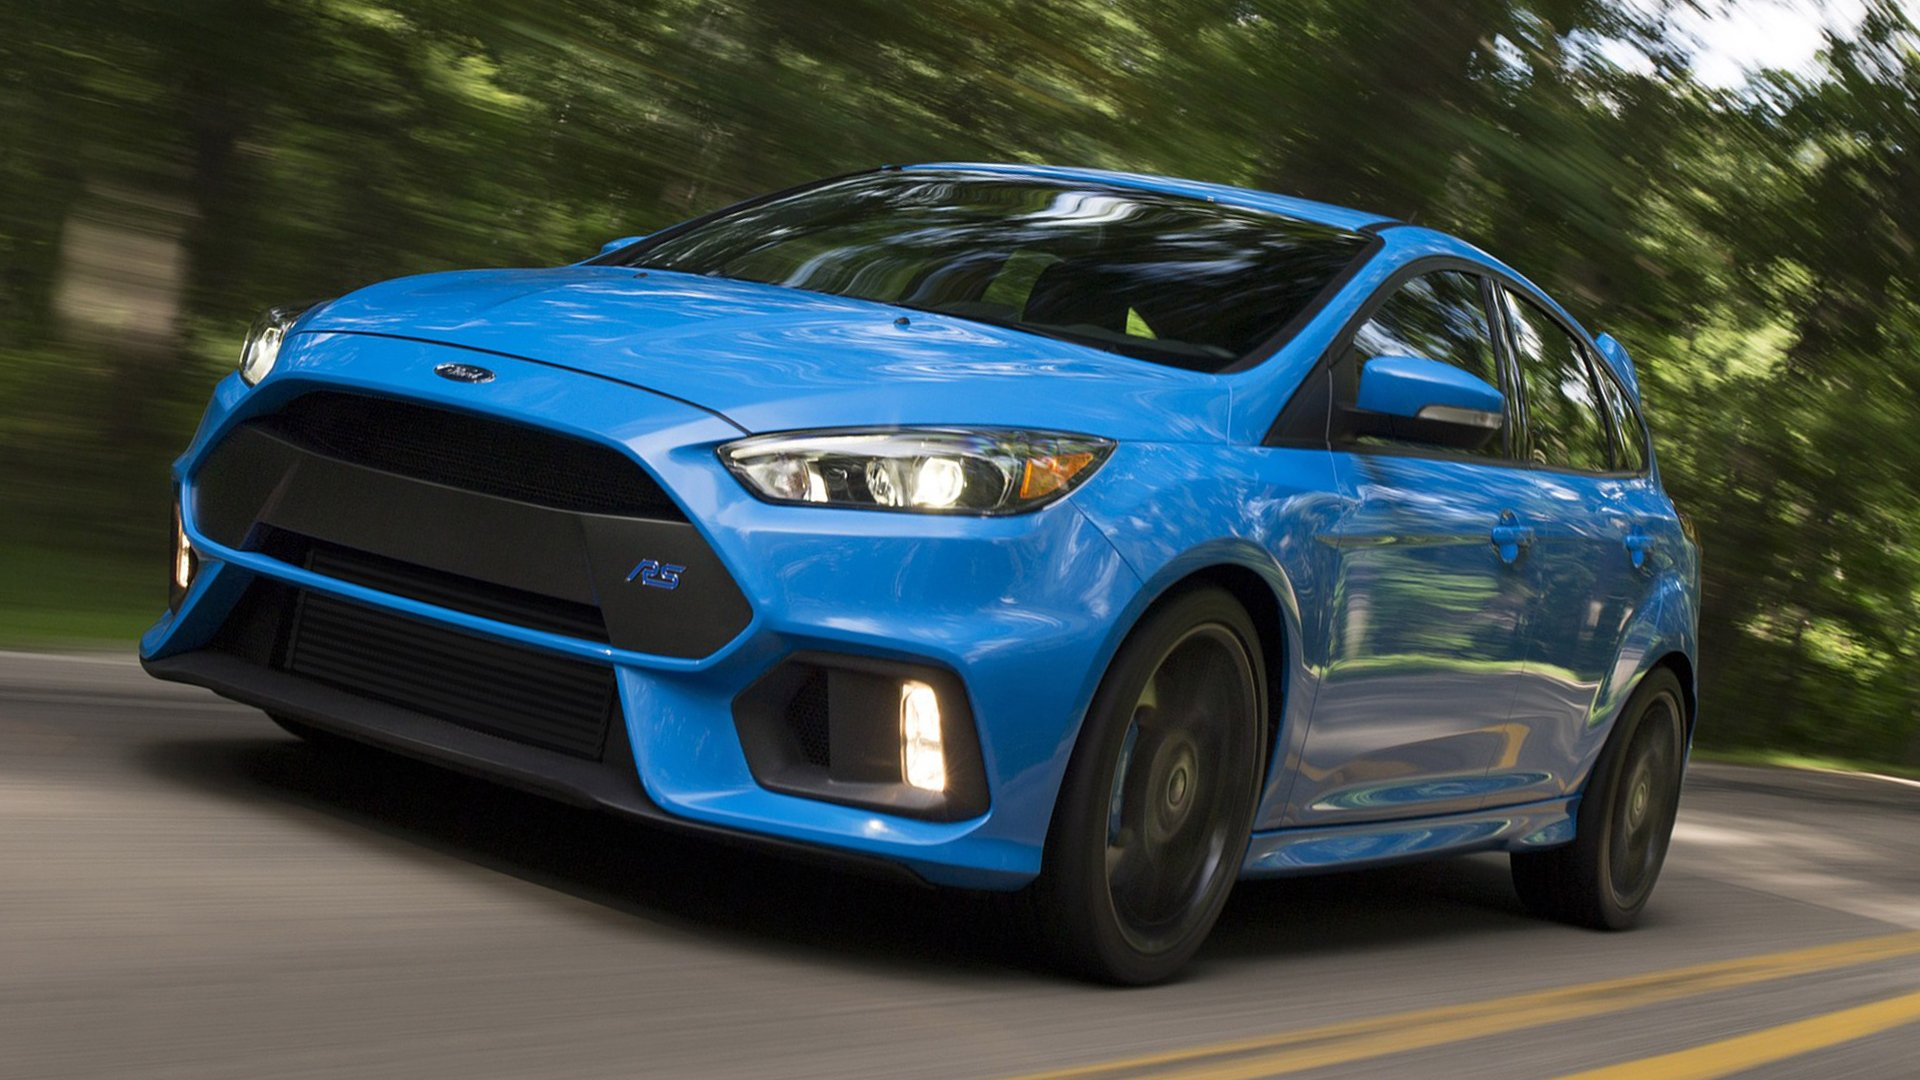 2019 Ford Focus Price in USA HD